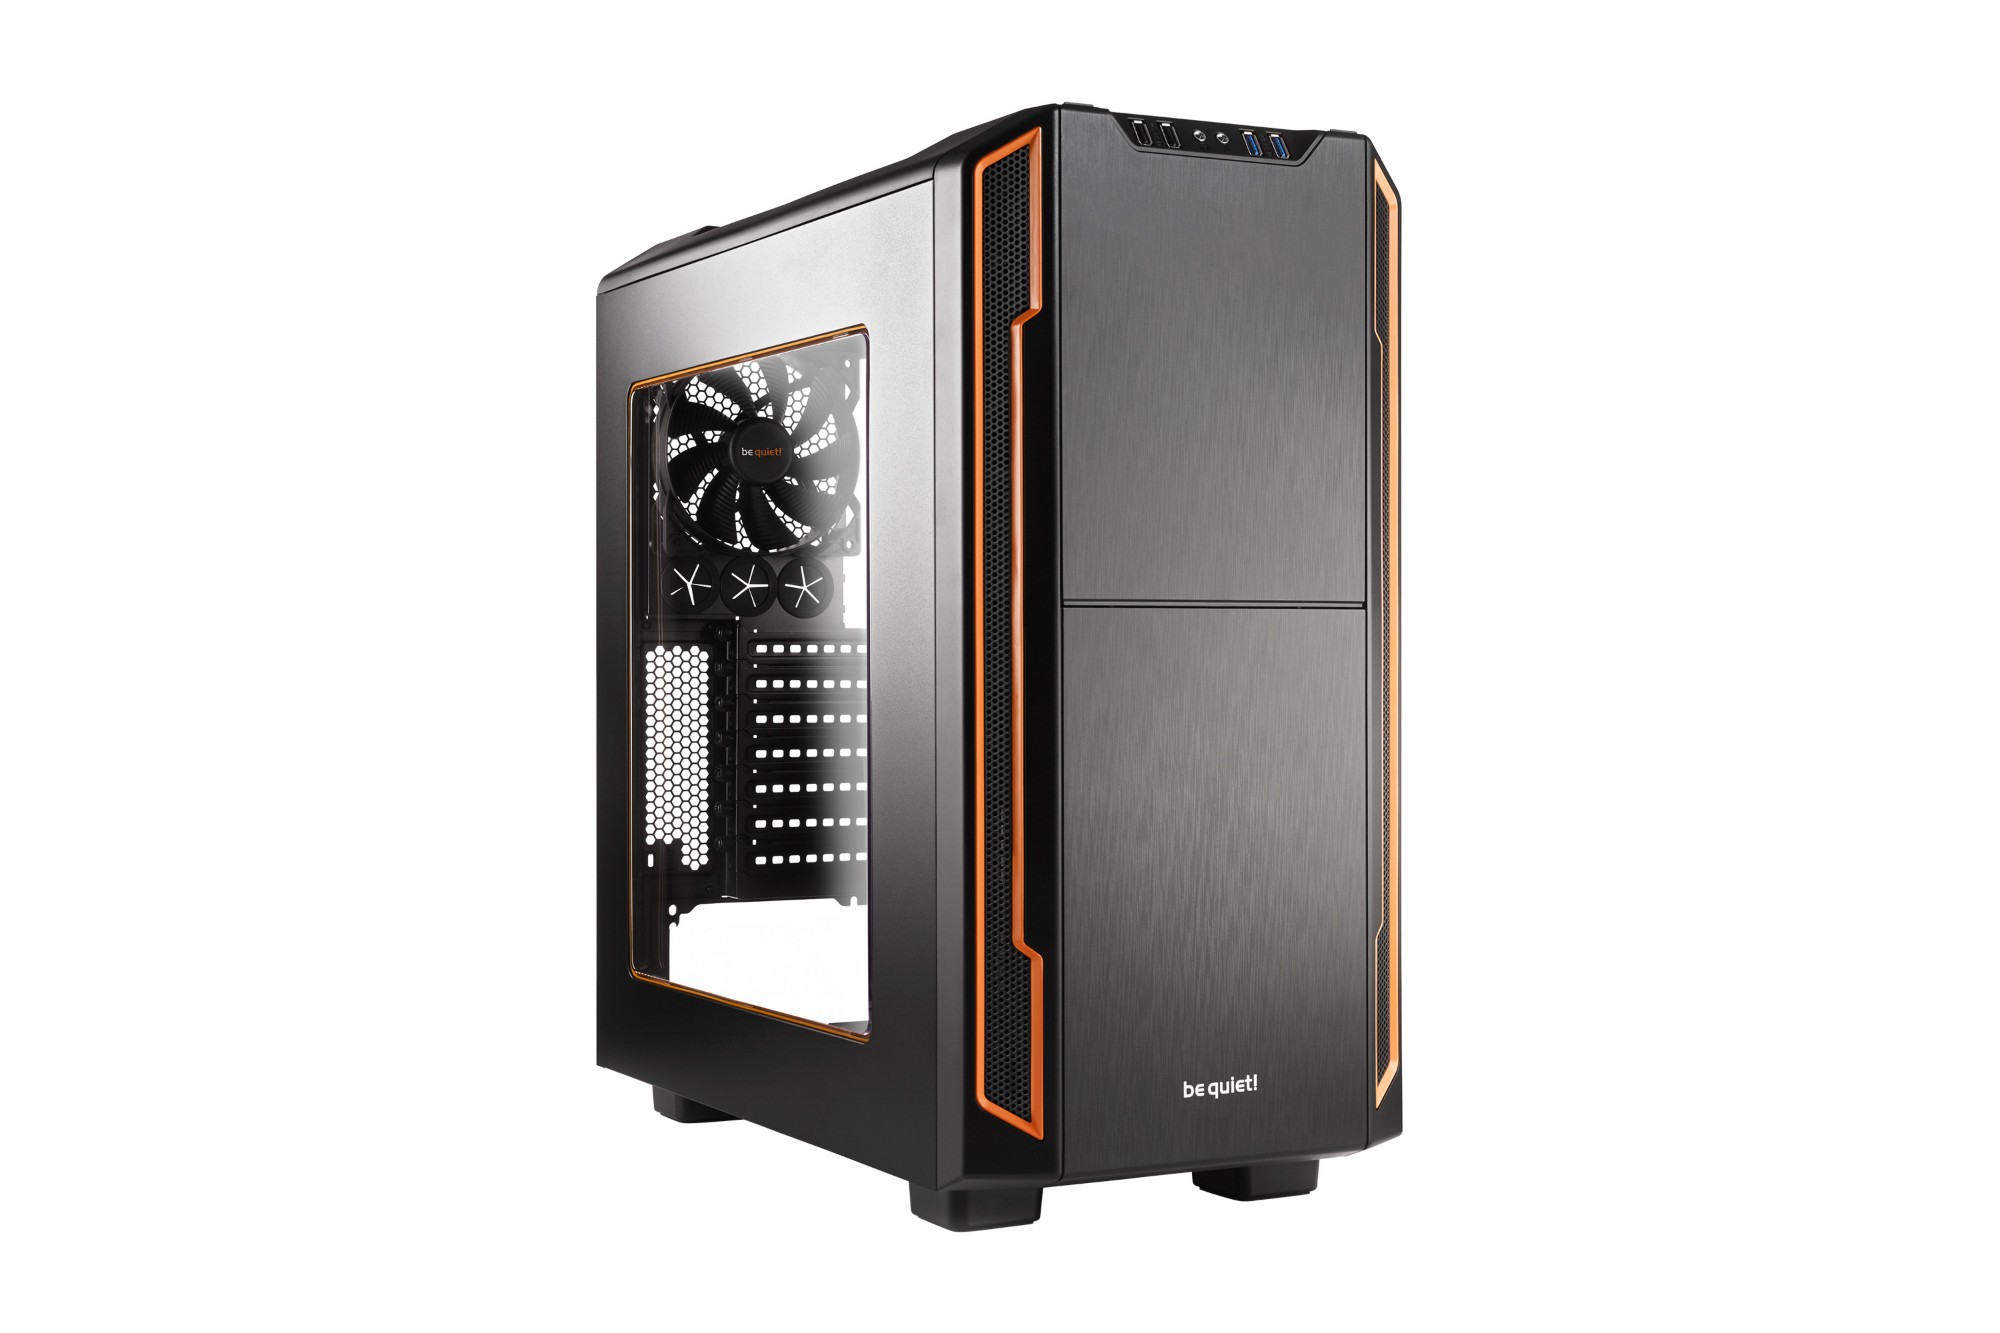 BE QUIET! BGW05 SILENT BASE 600 ORANGE,BLACK COMPUTER CASE